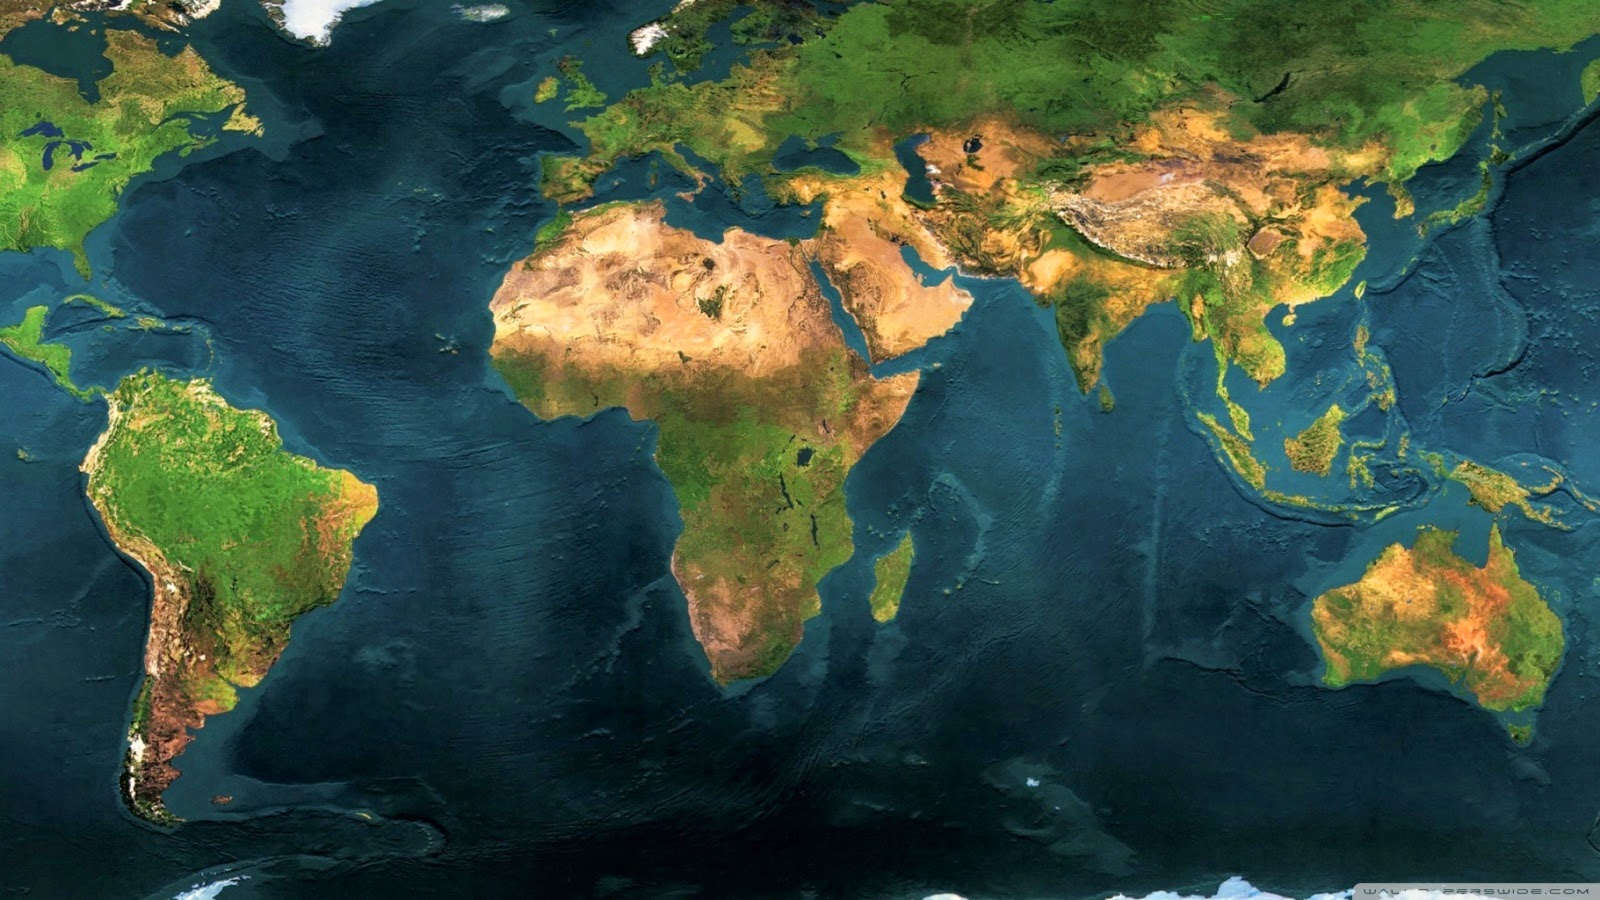 World Map Wallpaper Desktop Wallpapers   HD Wallpapers 1600x900